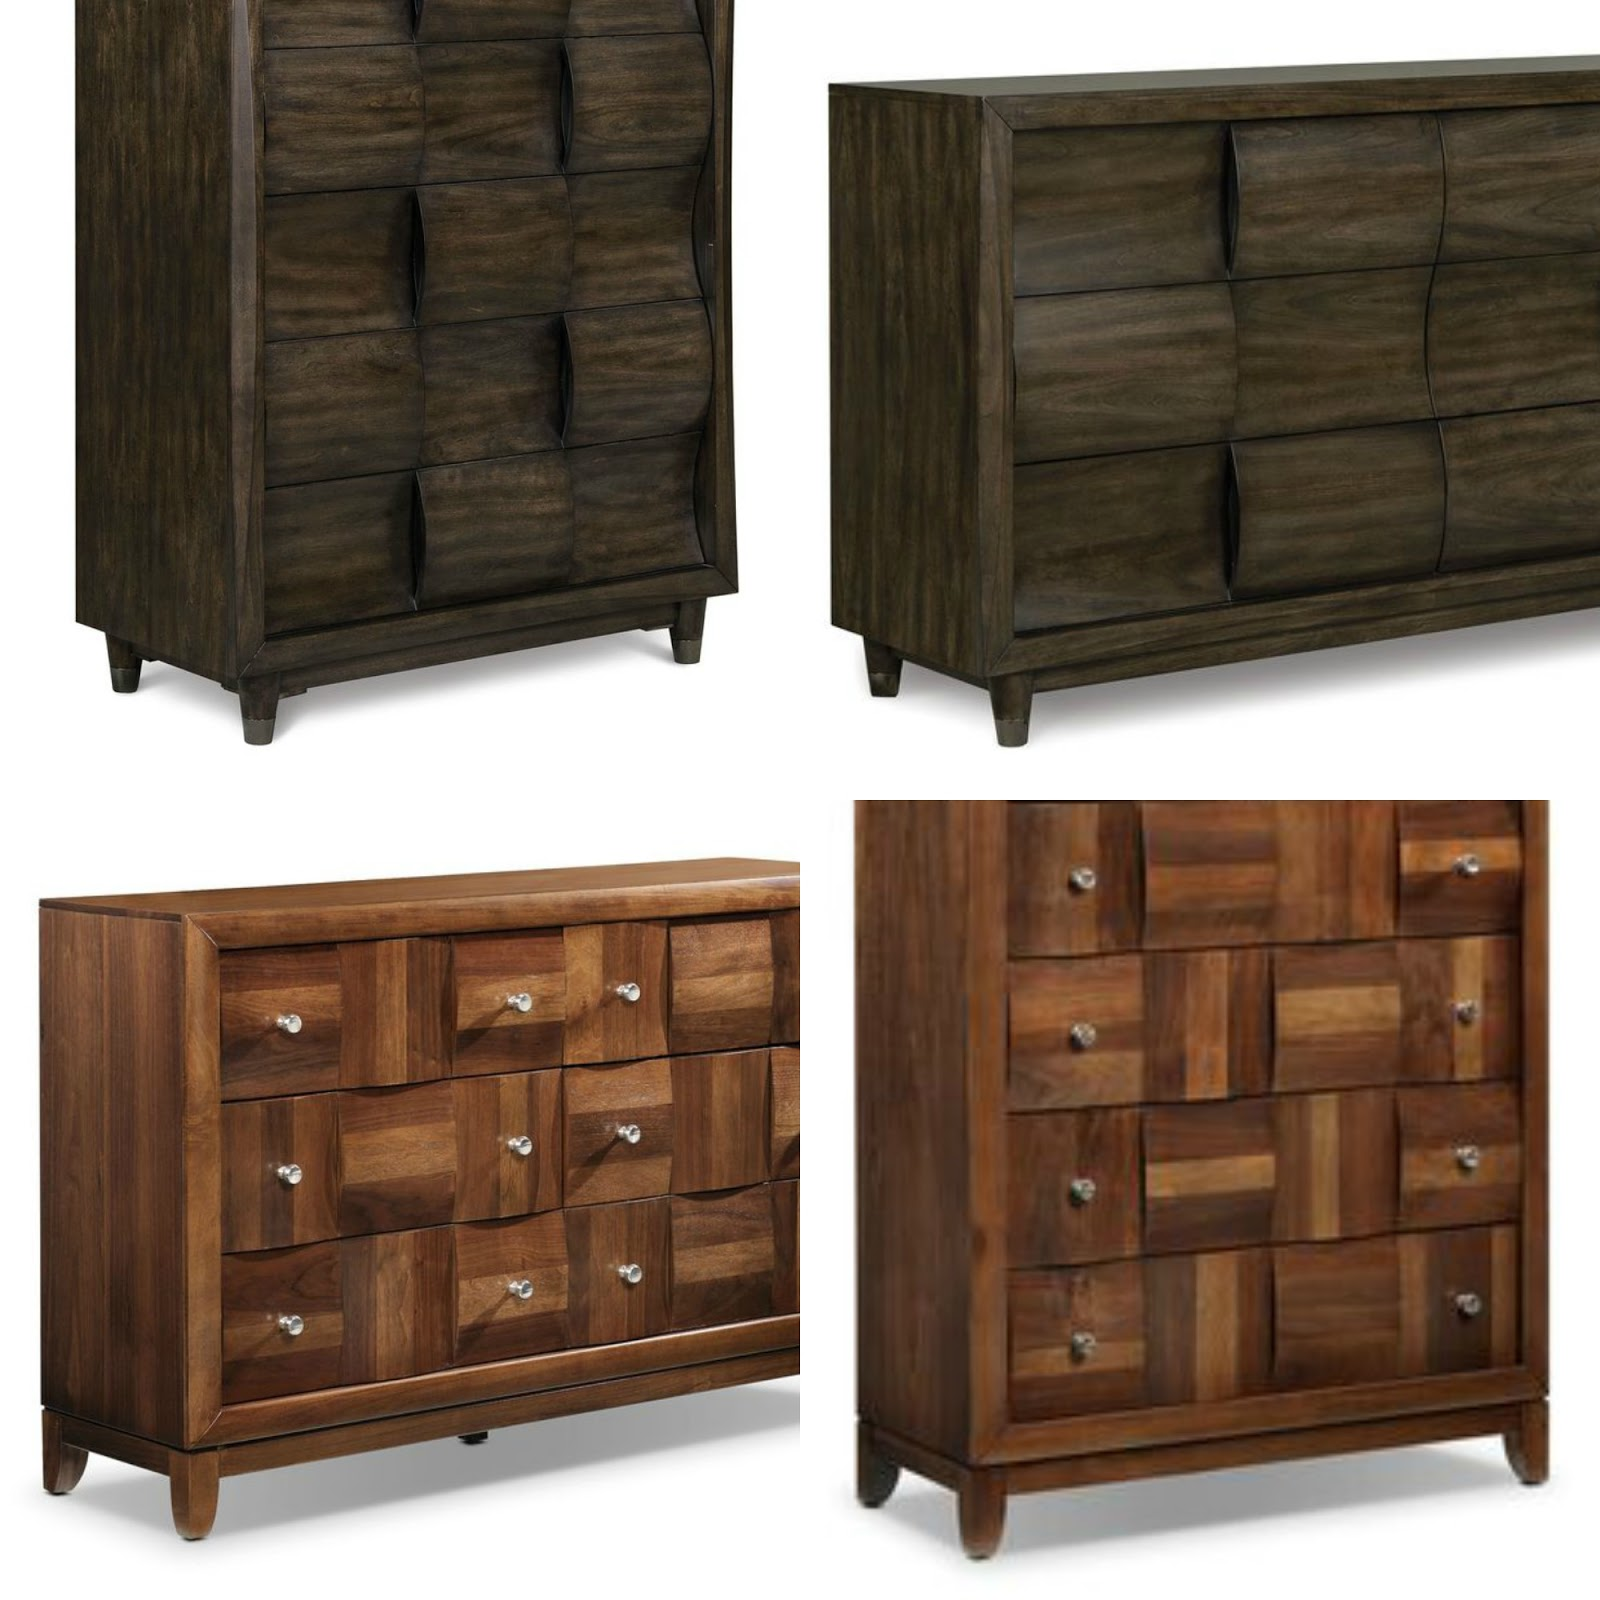 Leons Bedroom Furniture New Bedroom Dressers With Mid Century Styling Dans Le Lakehouse